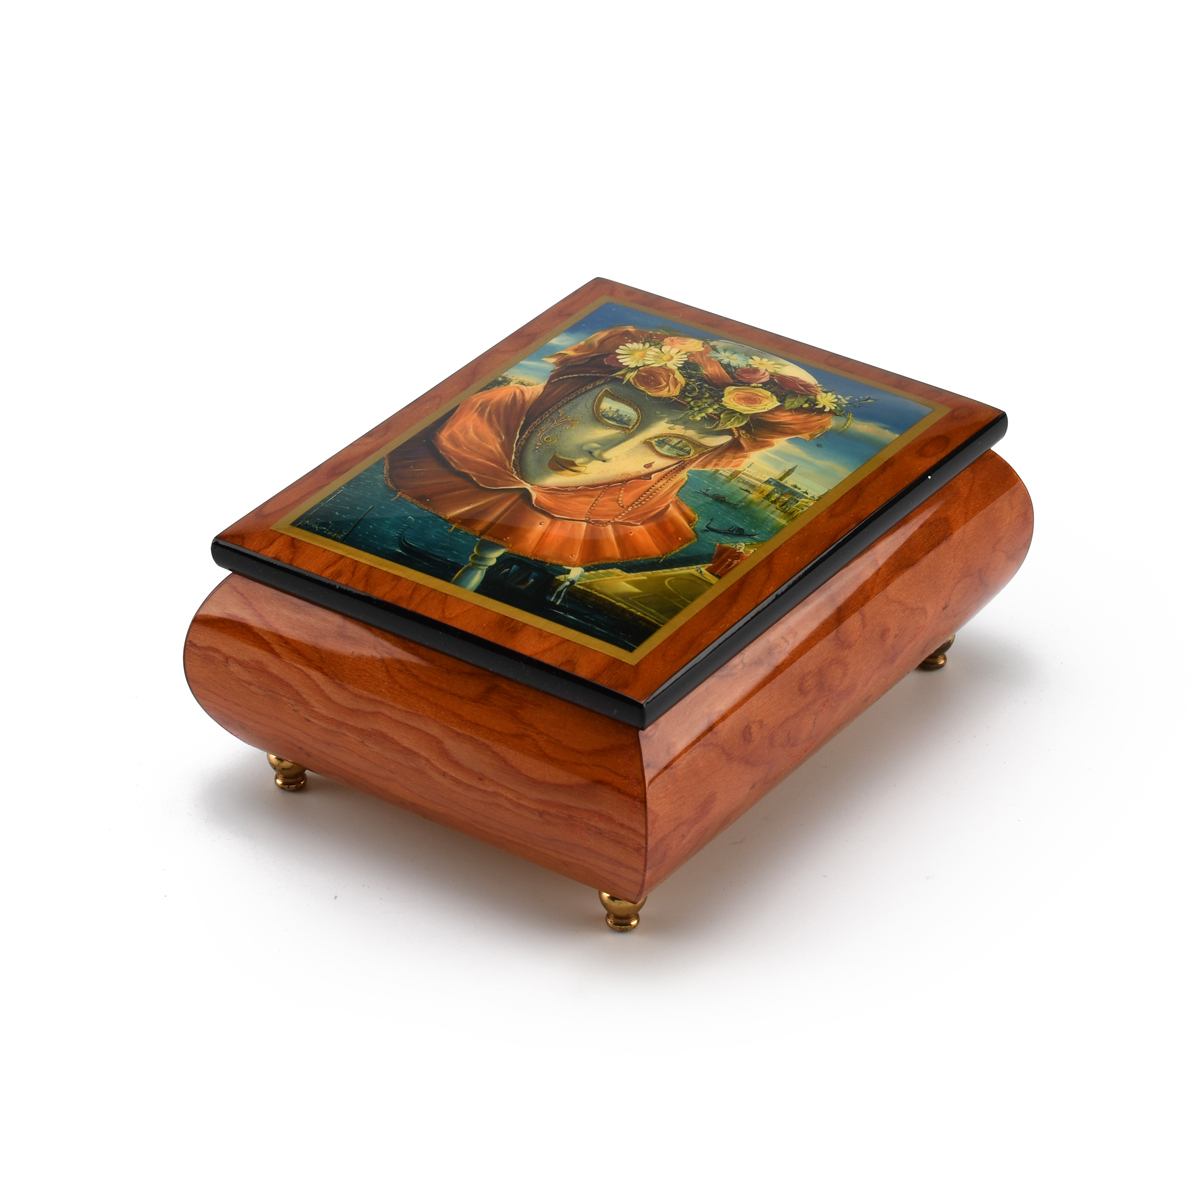 Festive Painted Ercolano Music Box of a Carnival / Venetian Mask titled Memories of Summer